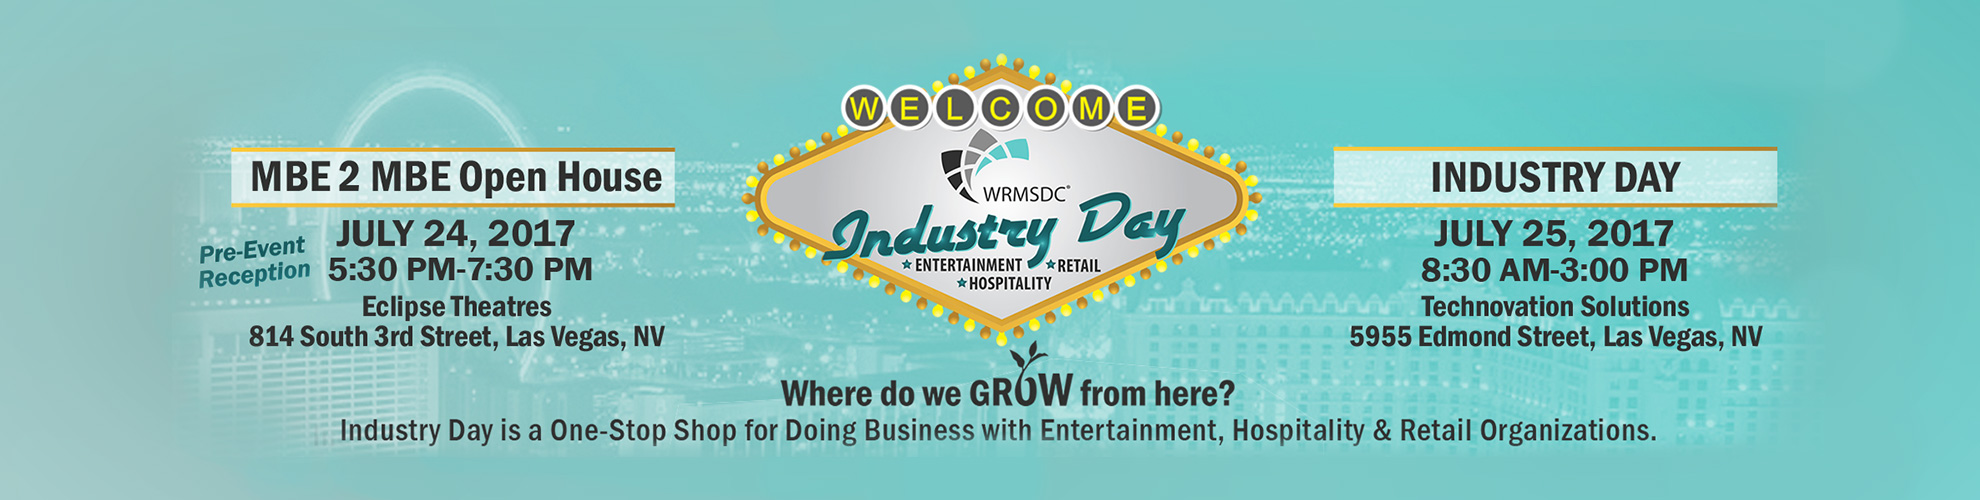 industry_day-1